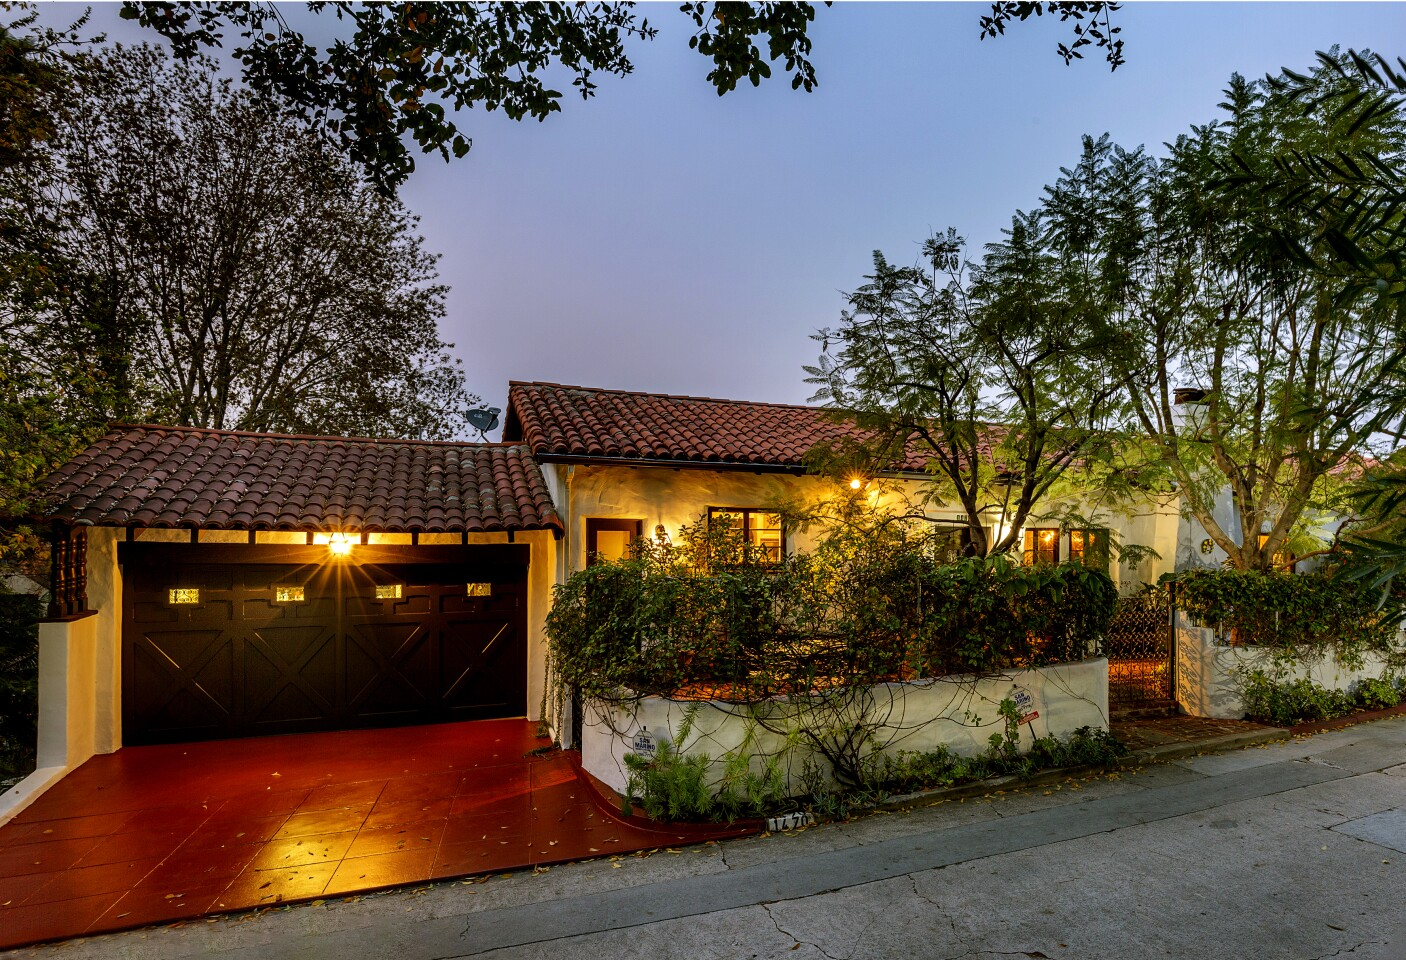 The Spanish Colonial-style home in Pasadena's Poppy Peak Historic District dates to 1929. (Shawn Bishop Photography)